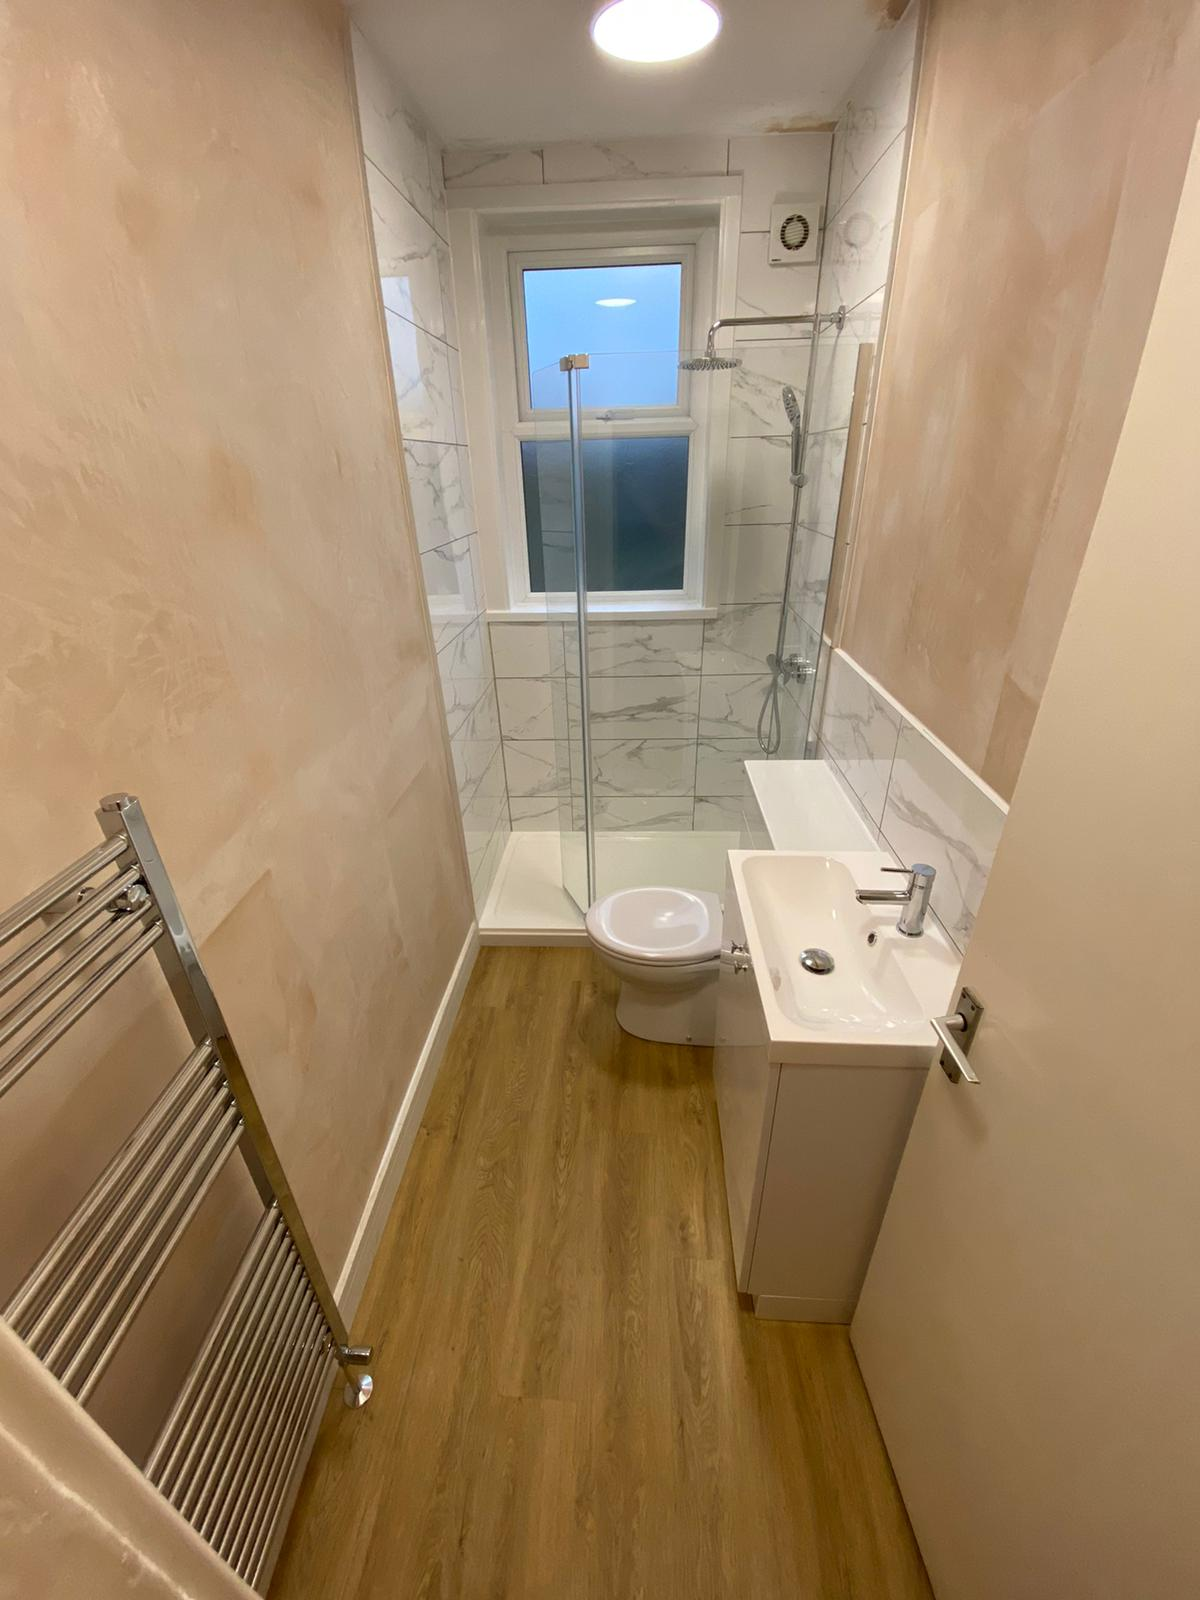 narrow bathroom using all space effectively to provide a luxury user experience